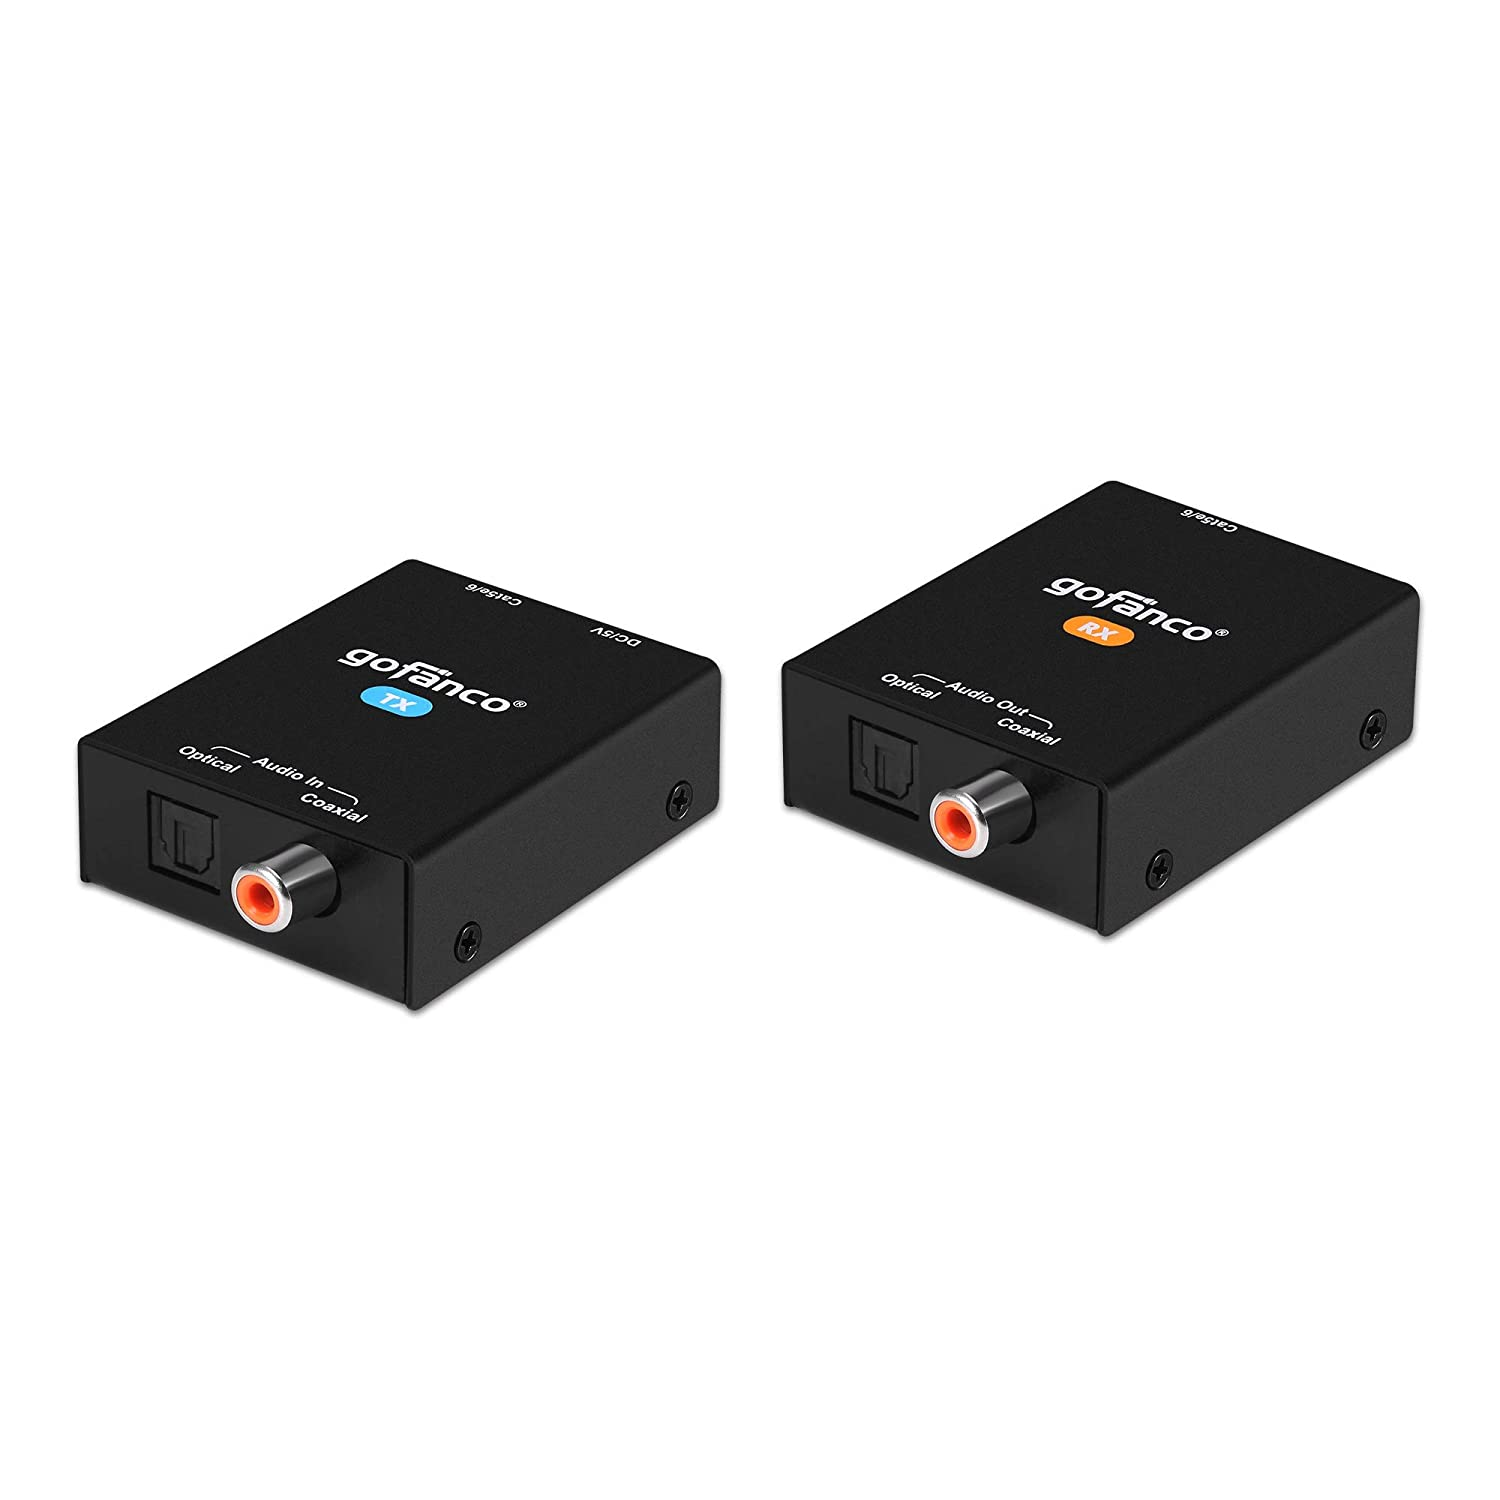 gofanco Coaxial Optical Max 60% OFF Max 60% OFF Toslink Digital Over Extender CAT5 Audio